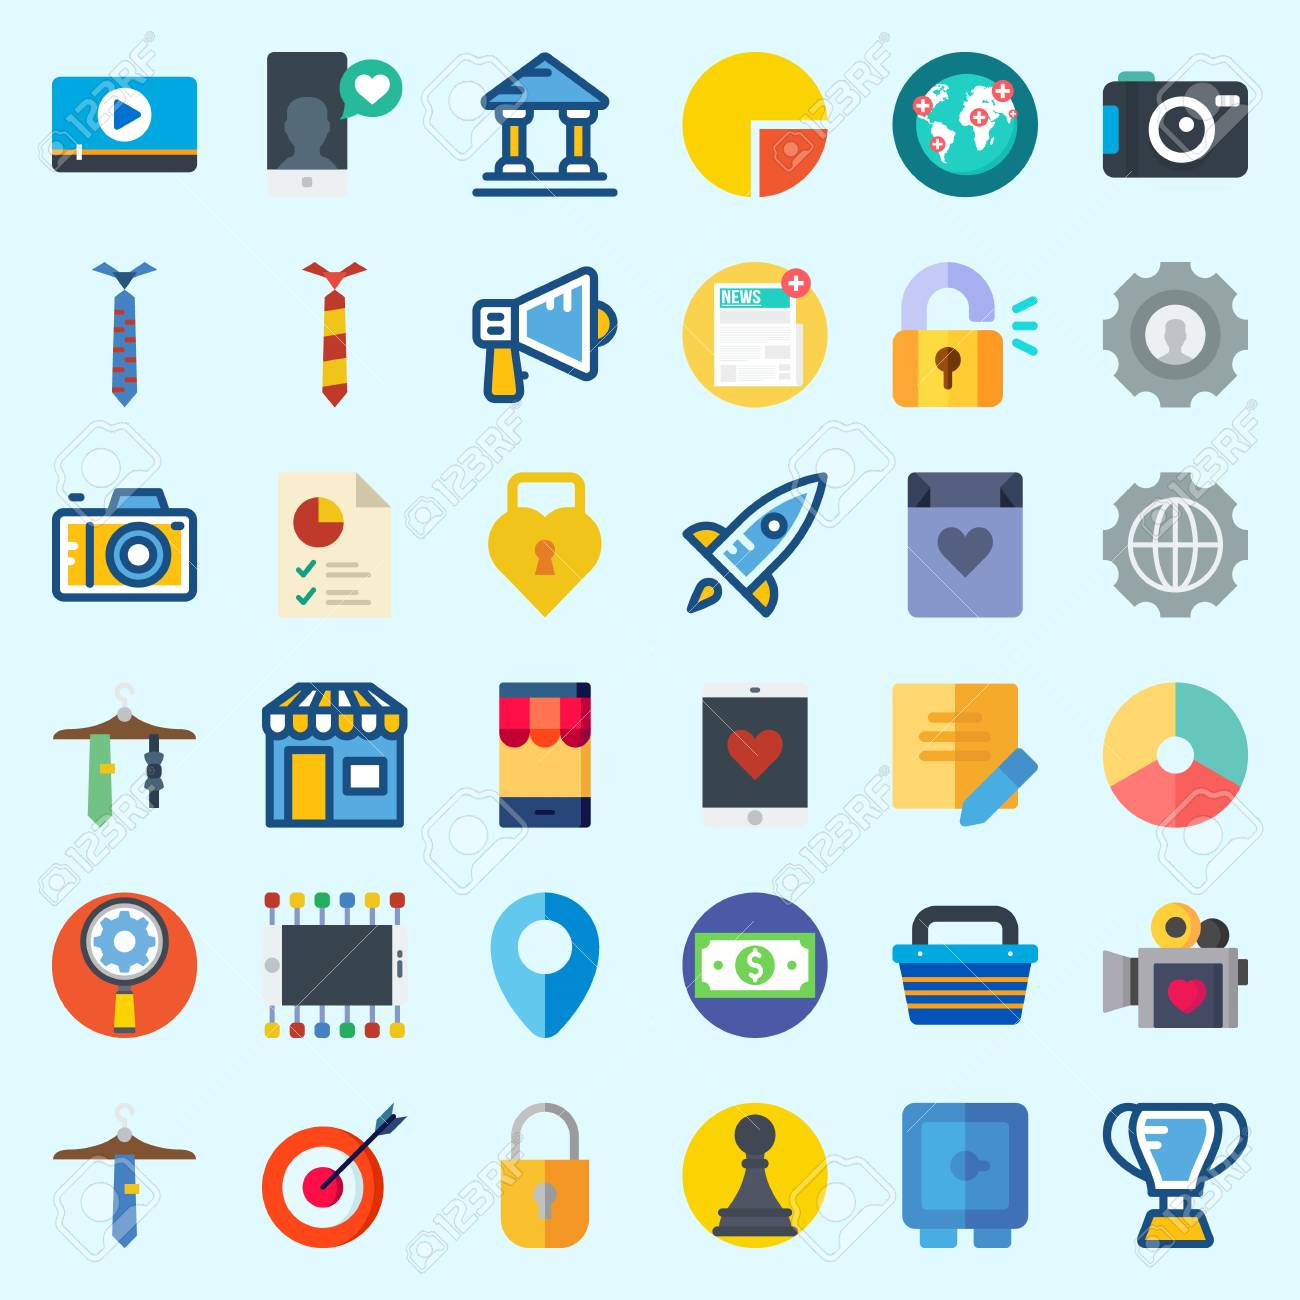 Icons about Digital Marketing with worldwide, video player, video